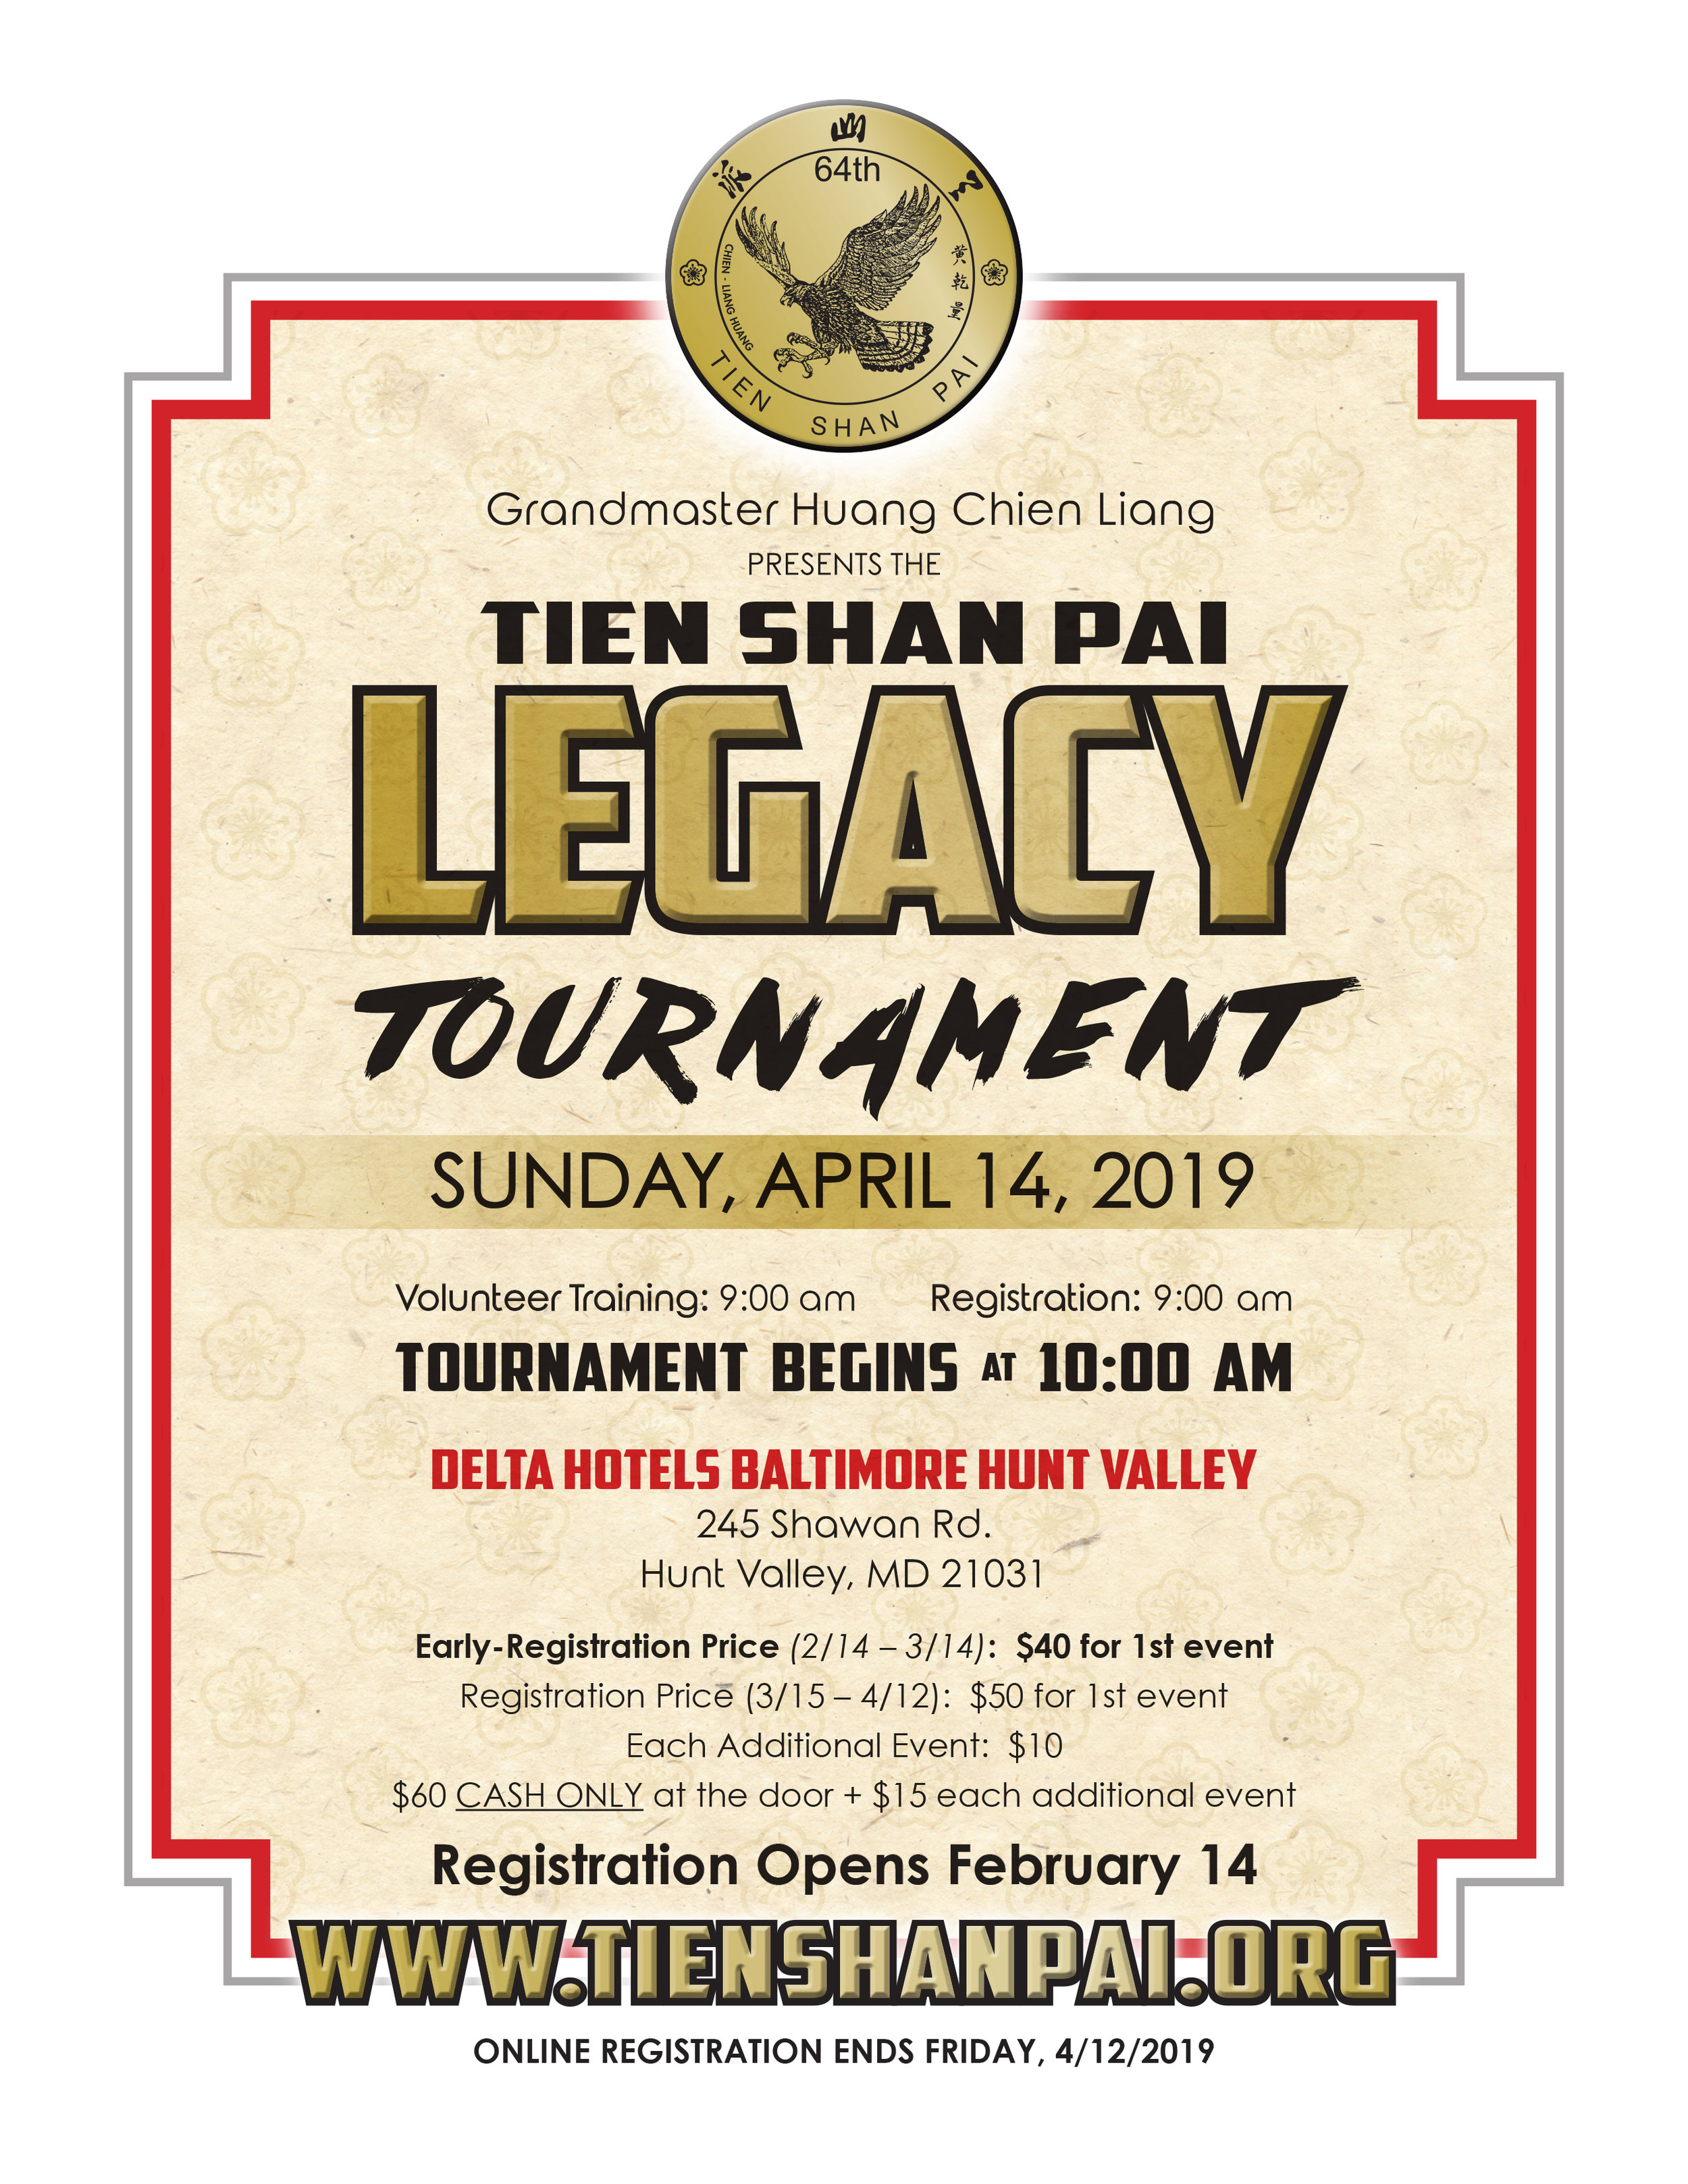 TSP Legacy Tournament 2019 - Flyer Flat.pdf - Adobe Acrobat Professional.jpg